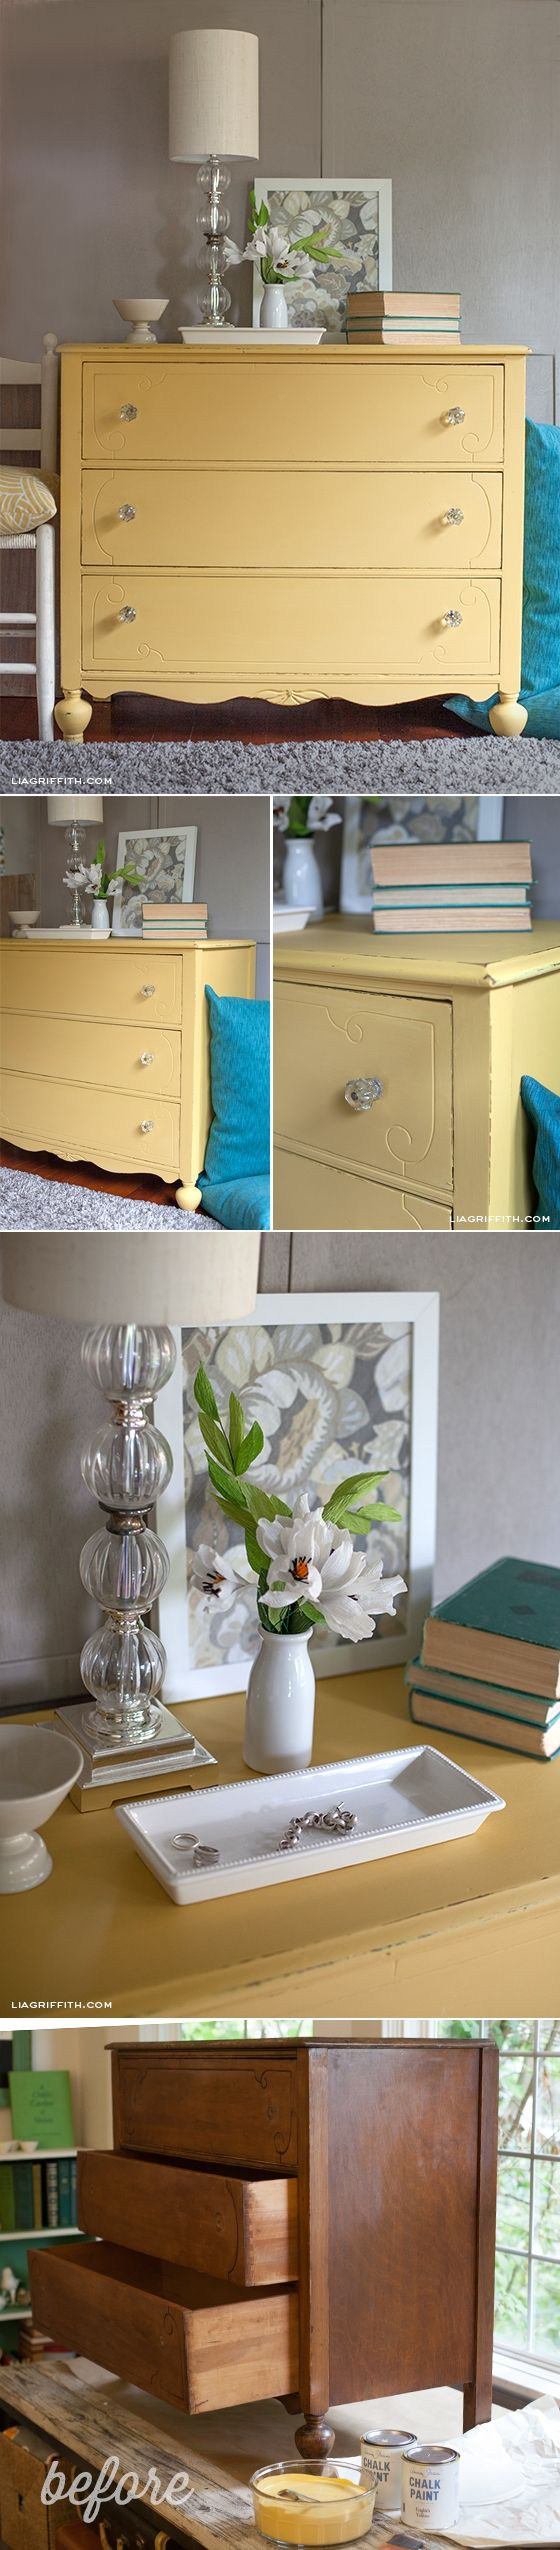 Chalk Paint a Yellow Dresser at www.liagriffith.com #upcycle #chalkpaint